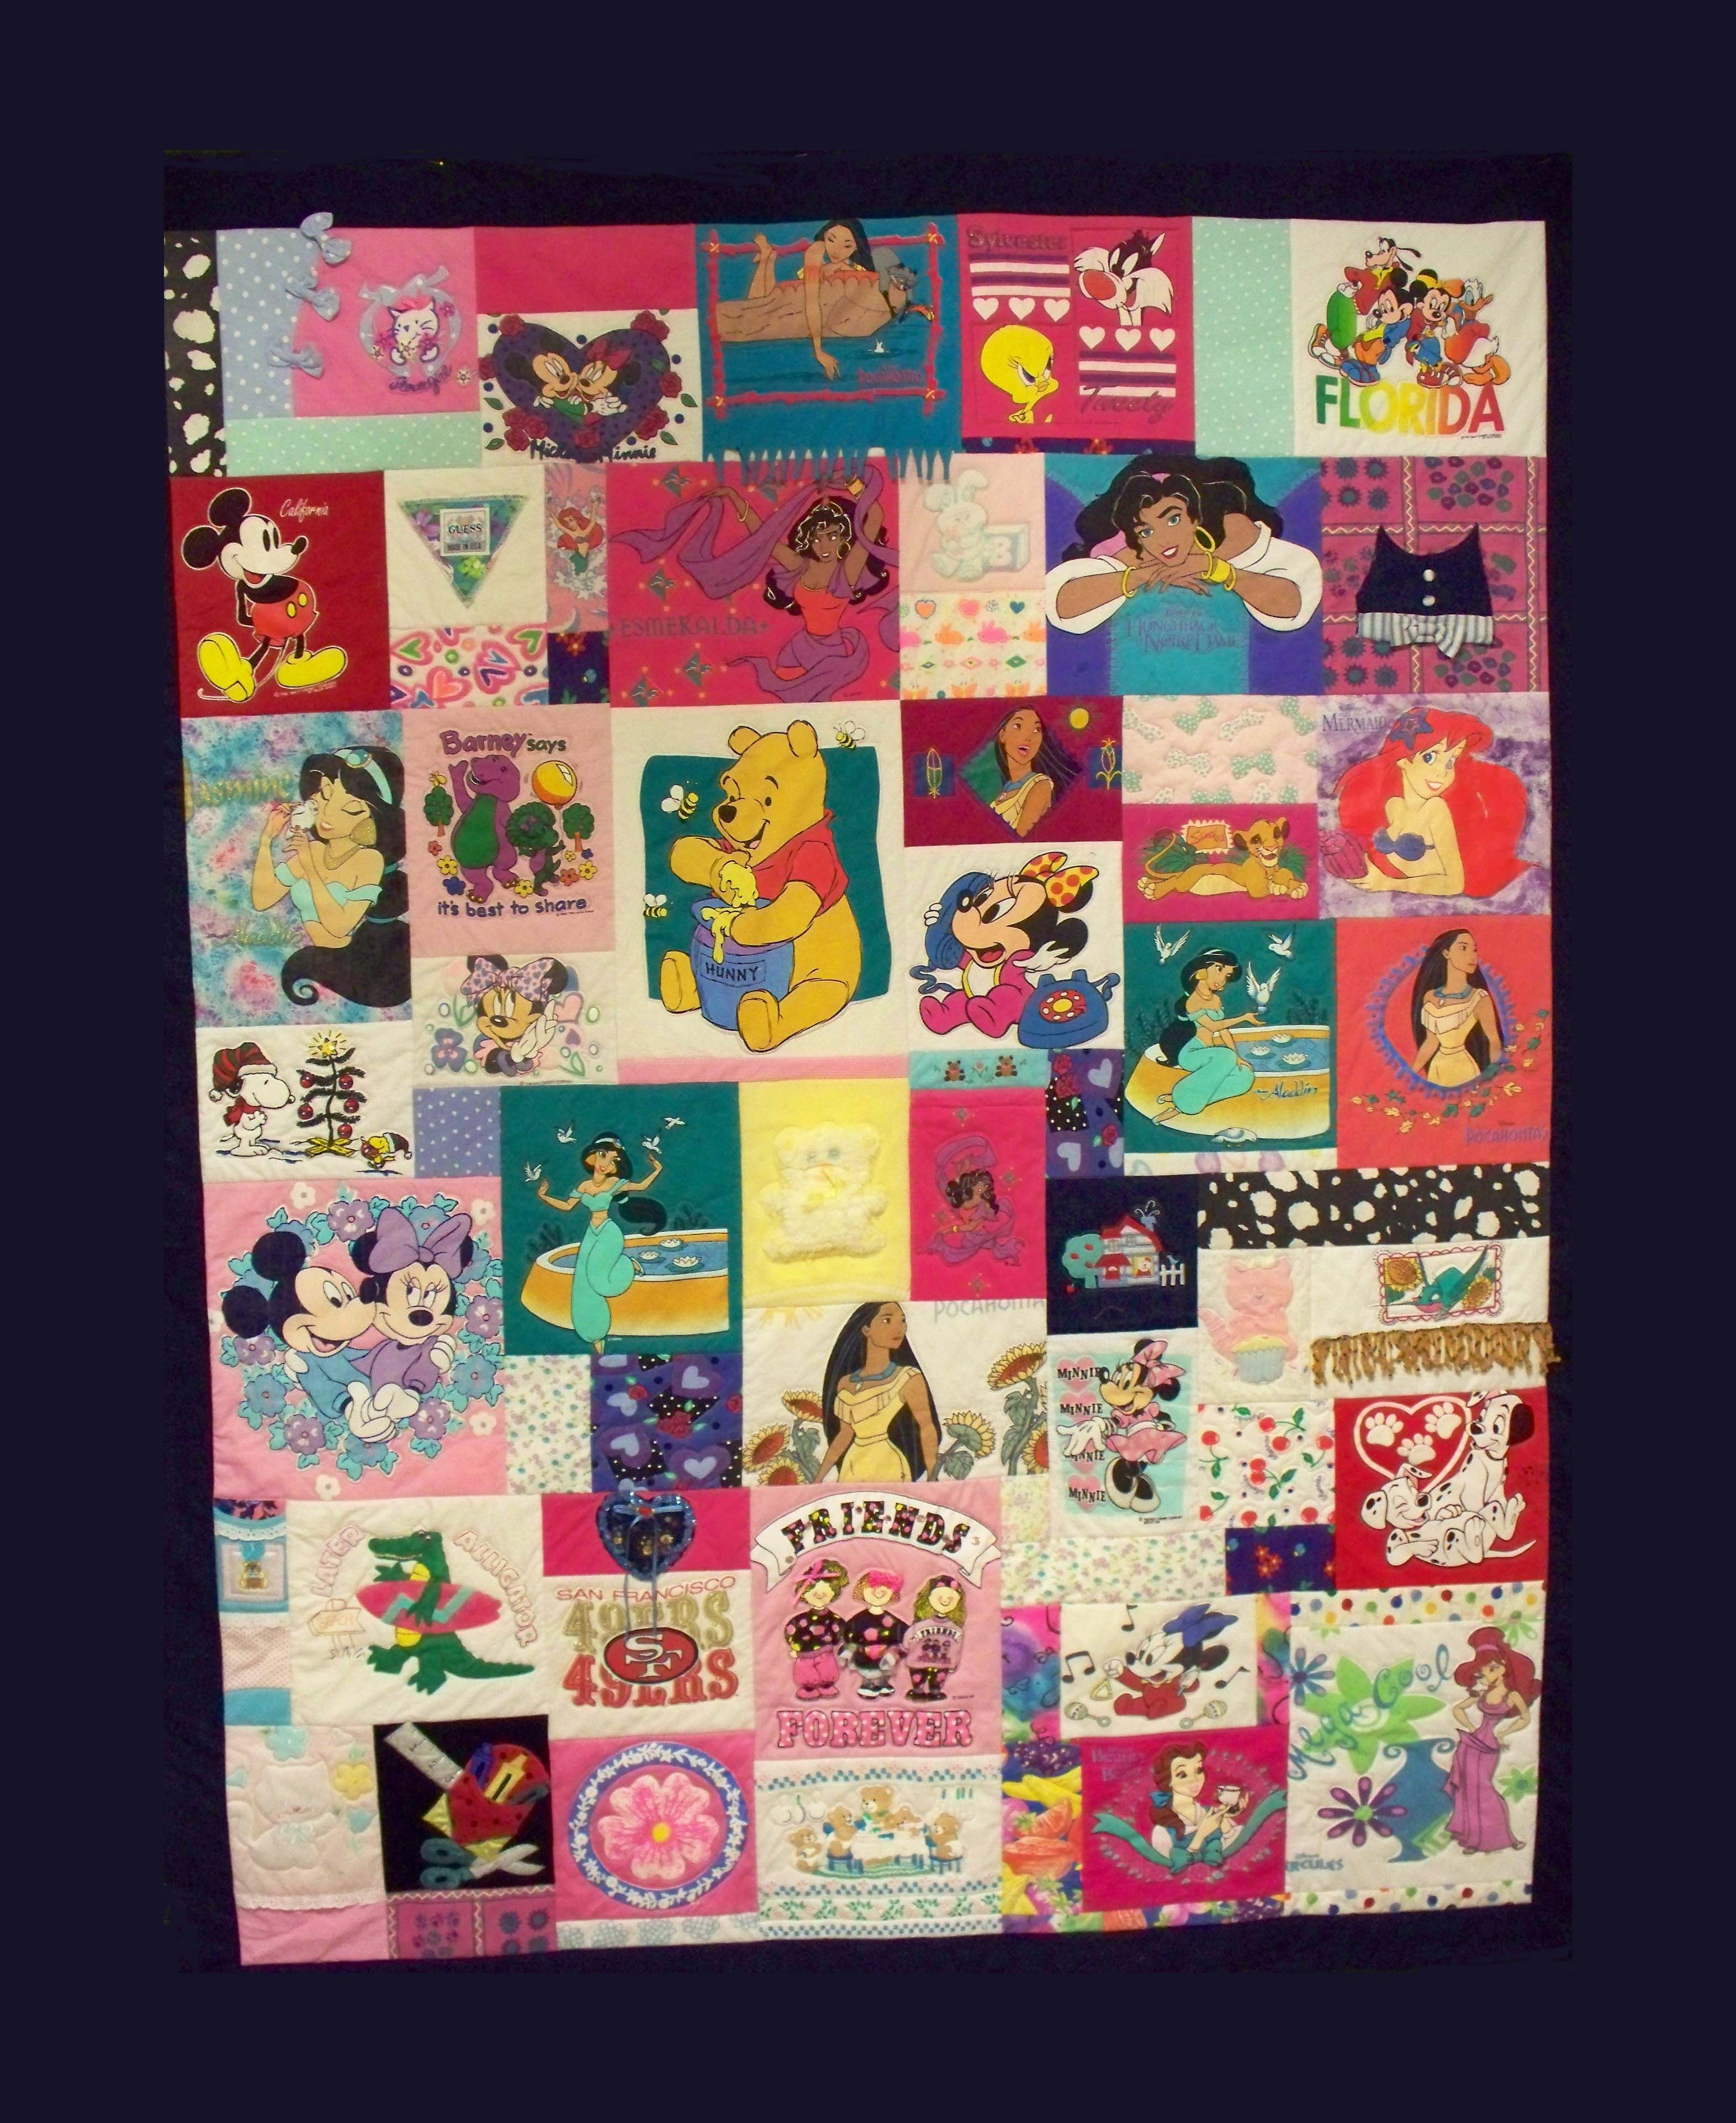 T-shirt quilt - one of the best I've seen. Love all the cute kids ... : quilt from tshirts - Adamdwight.com